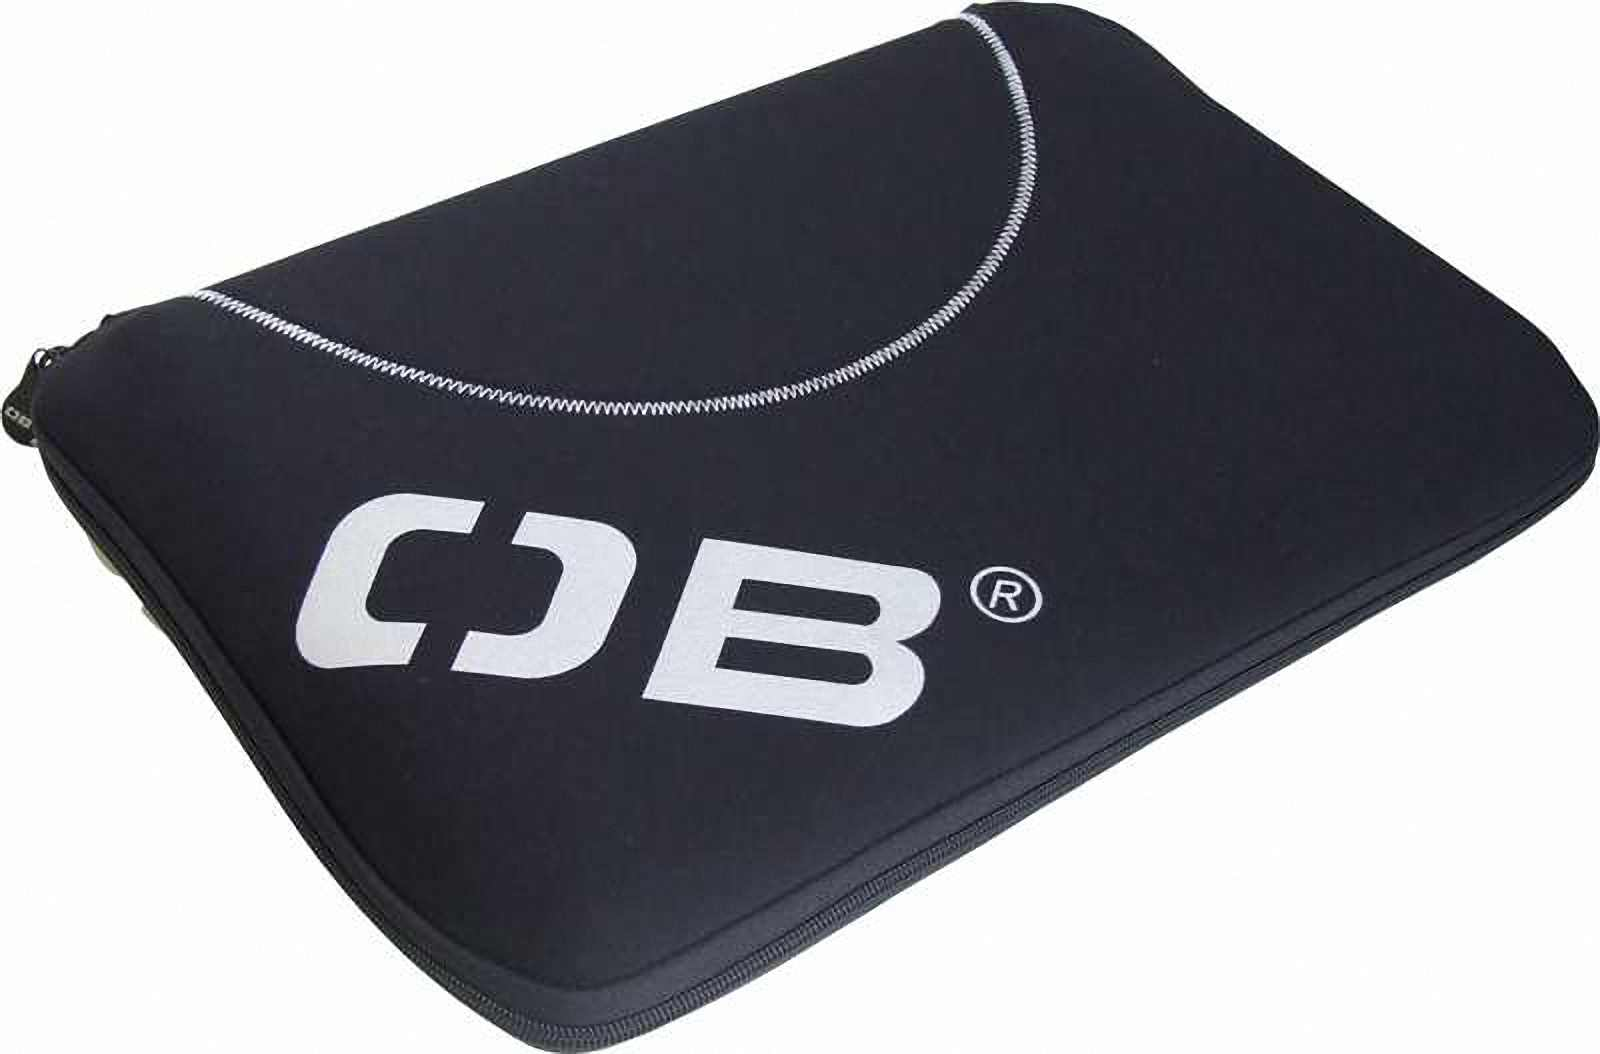 Защитный чехол OverBoard OB1074BLK - Laptop Sleeve - Large. Фото 4